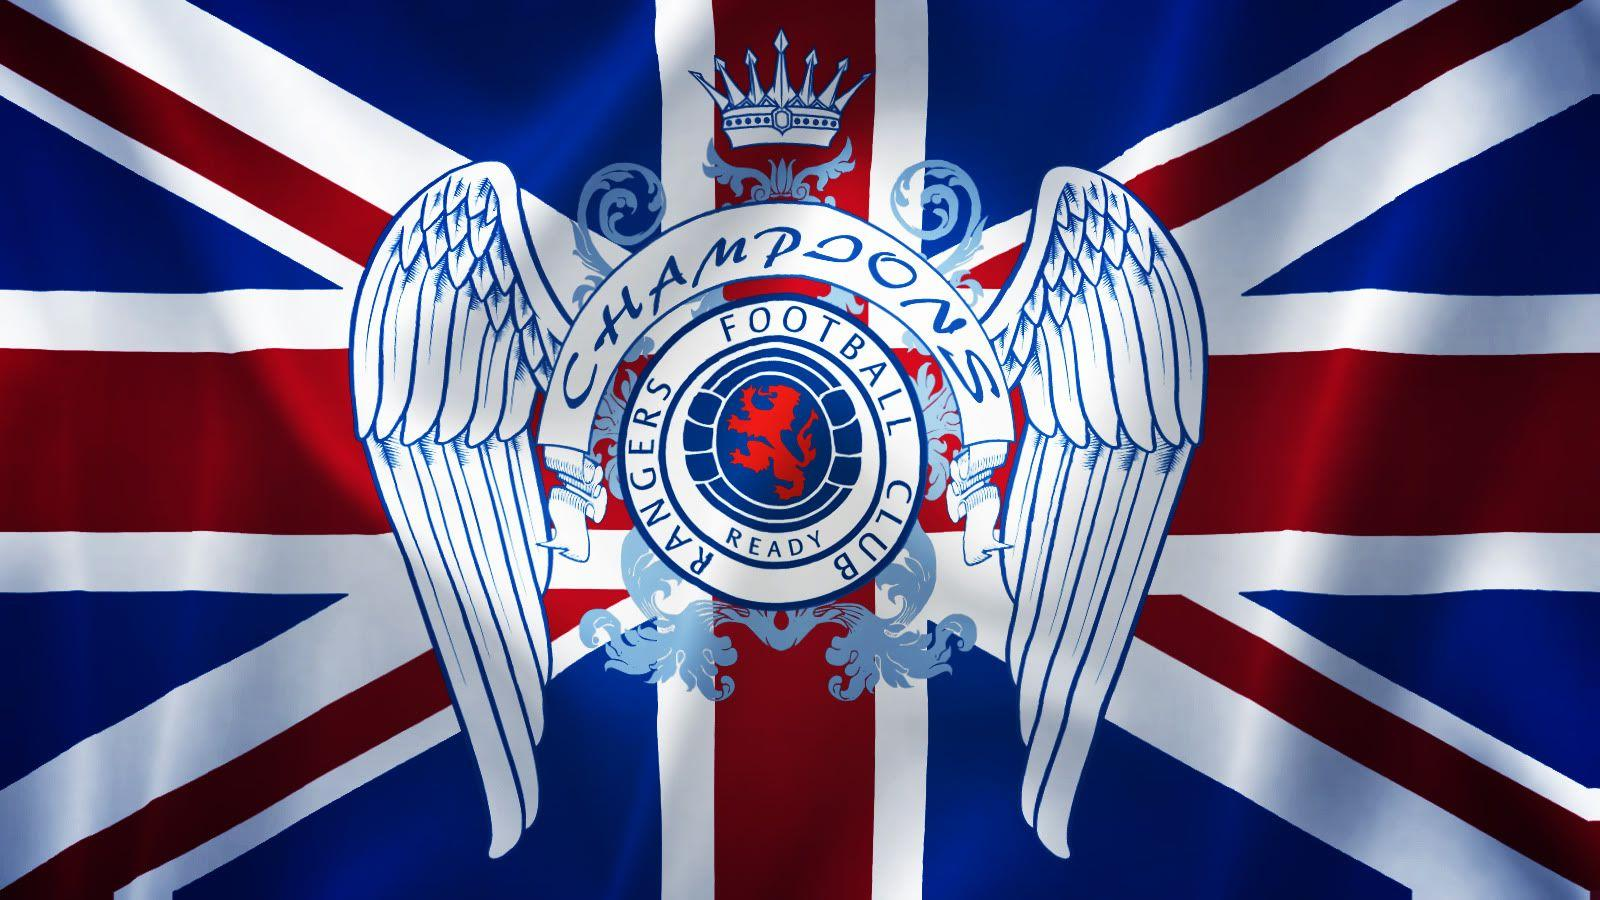 glasgow rangers wallpaper